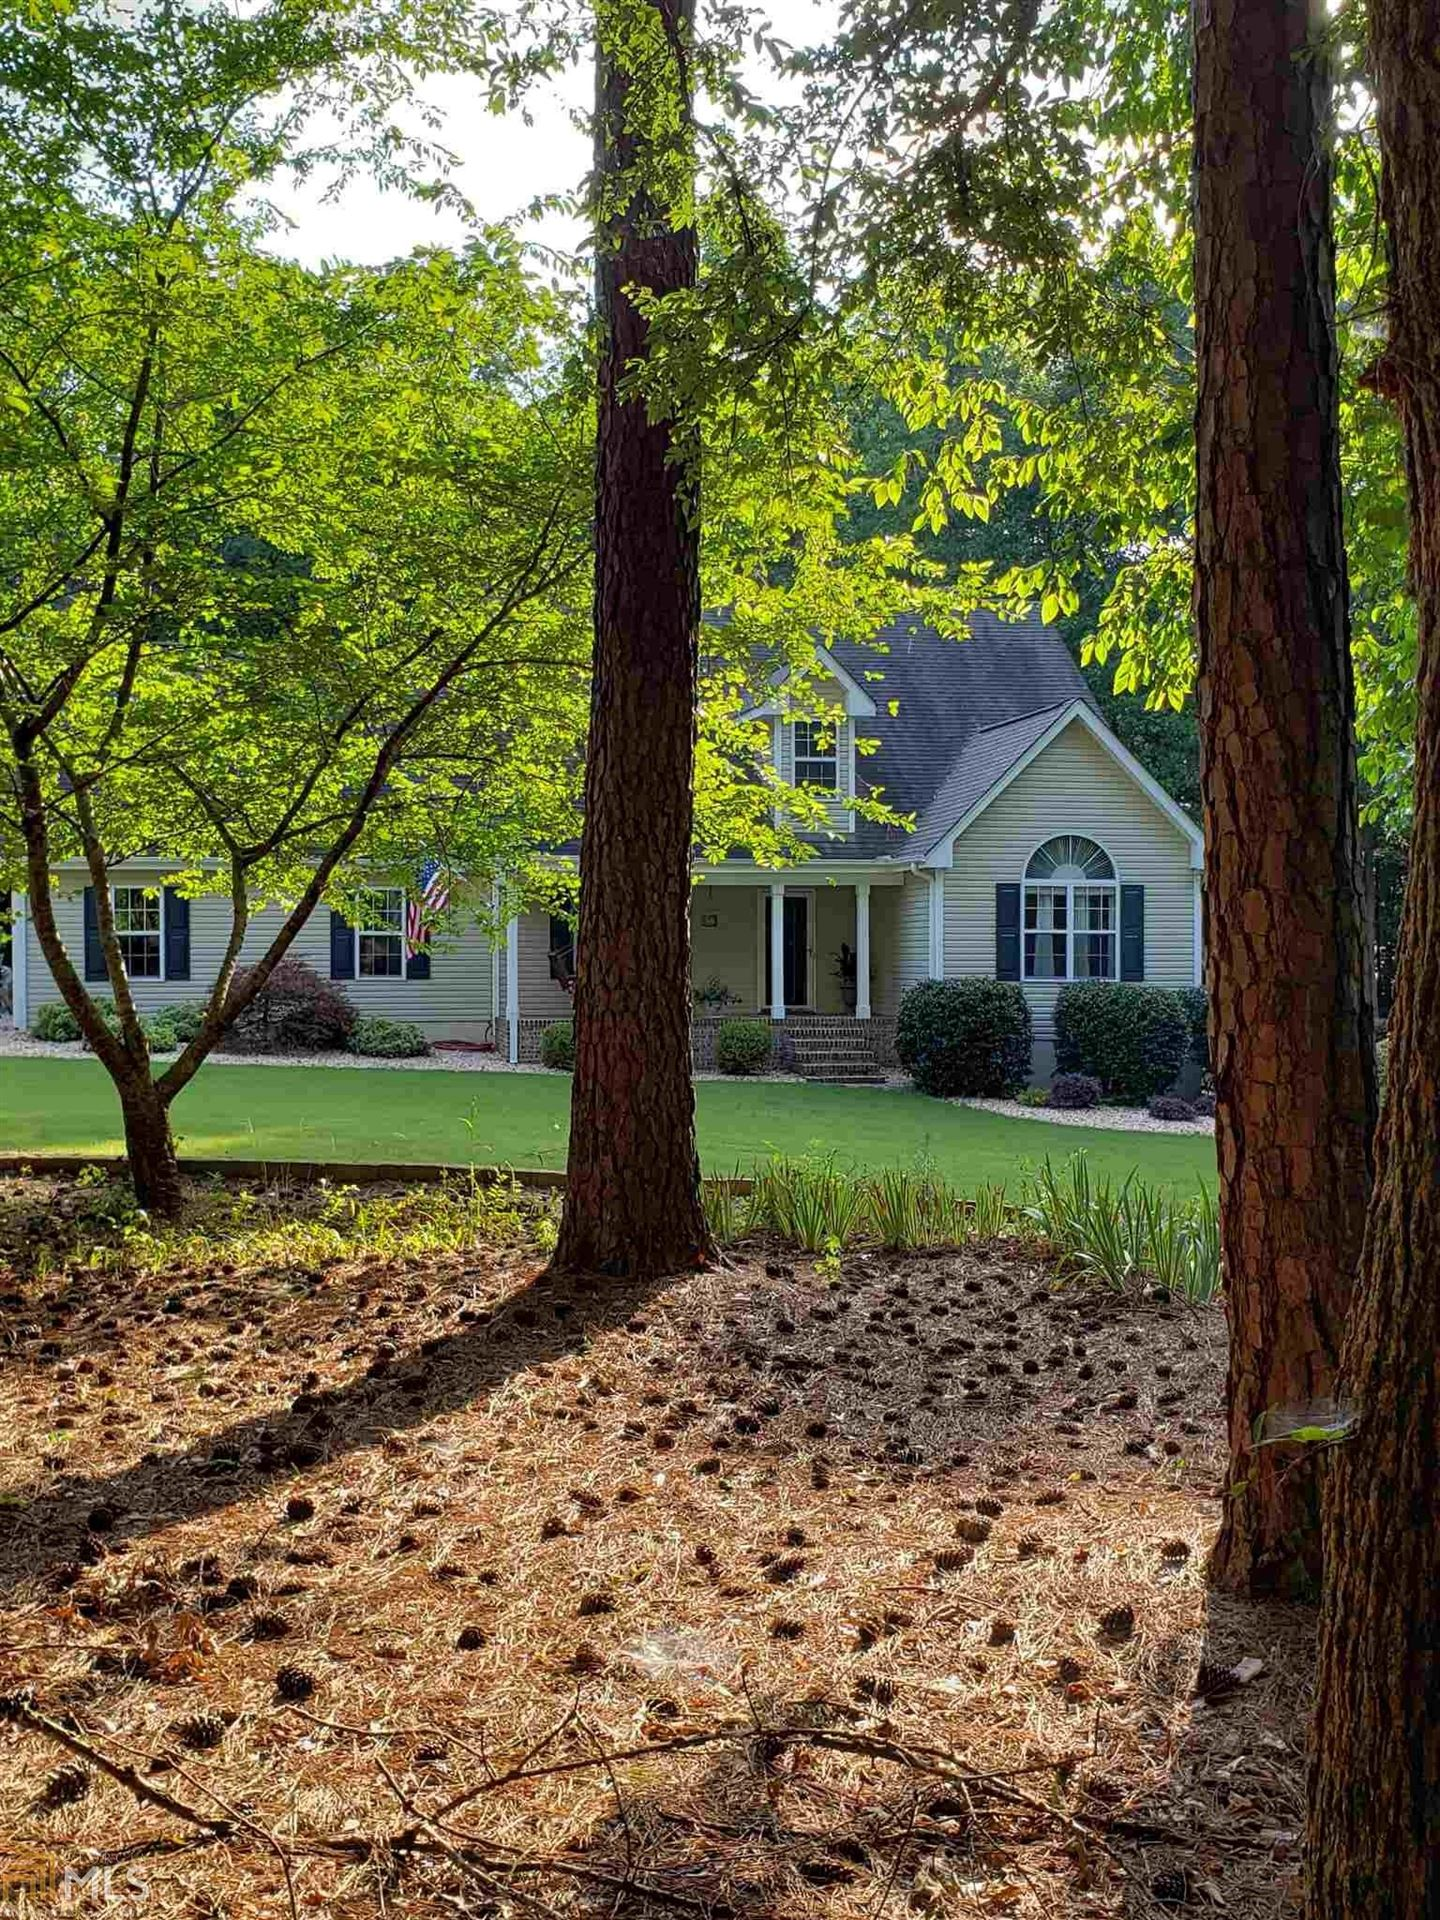 555 Hidden Lakes Trl, Jefferson, GA 30549 - MLS#: 8843627